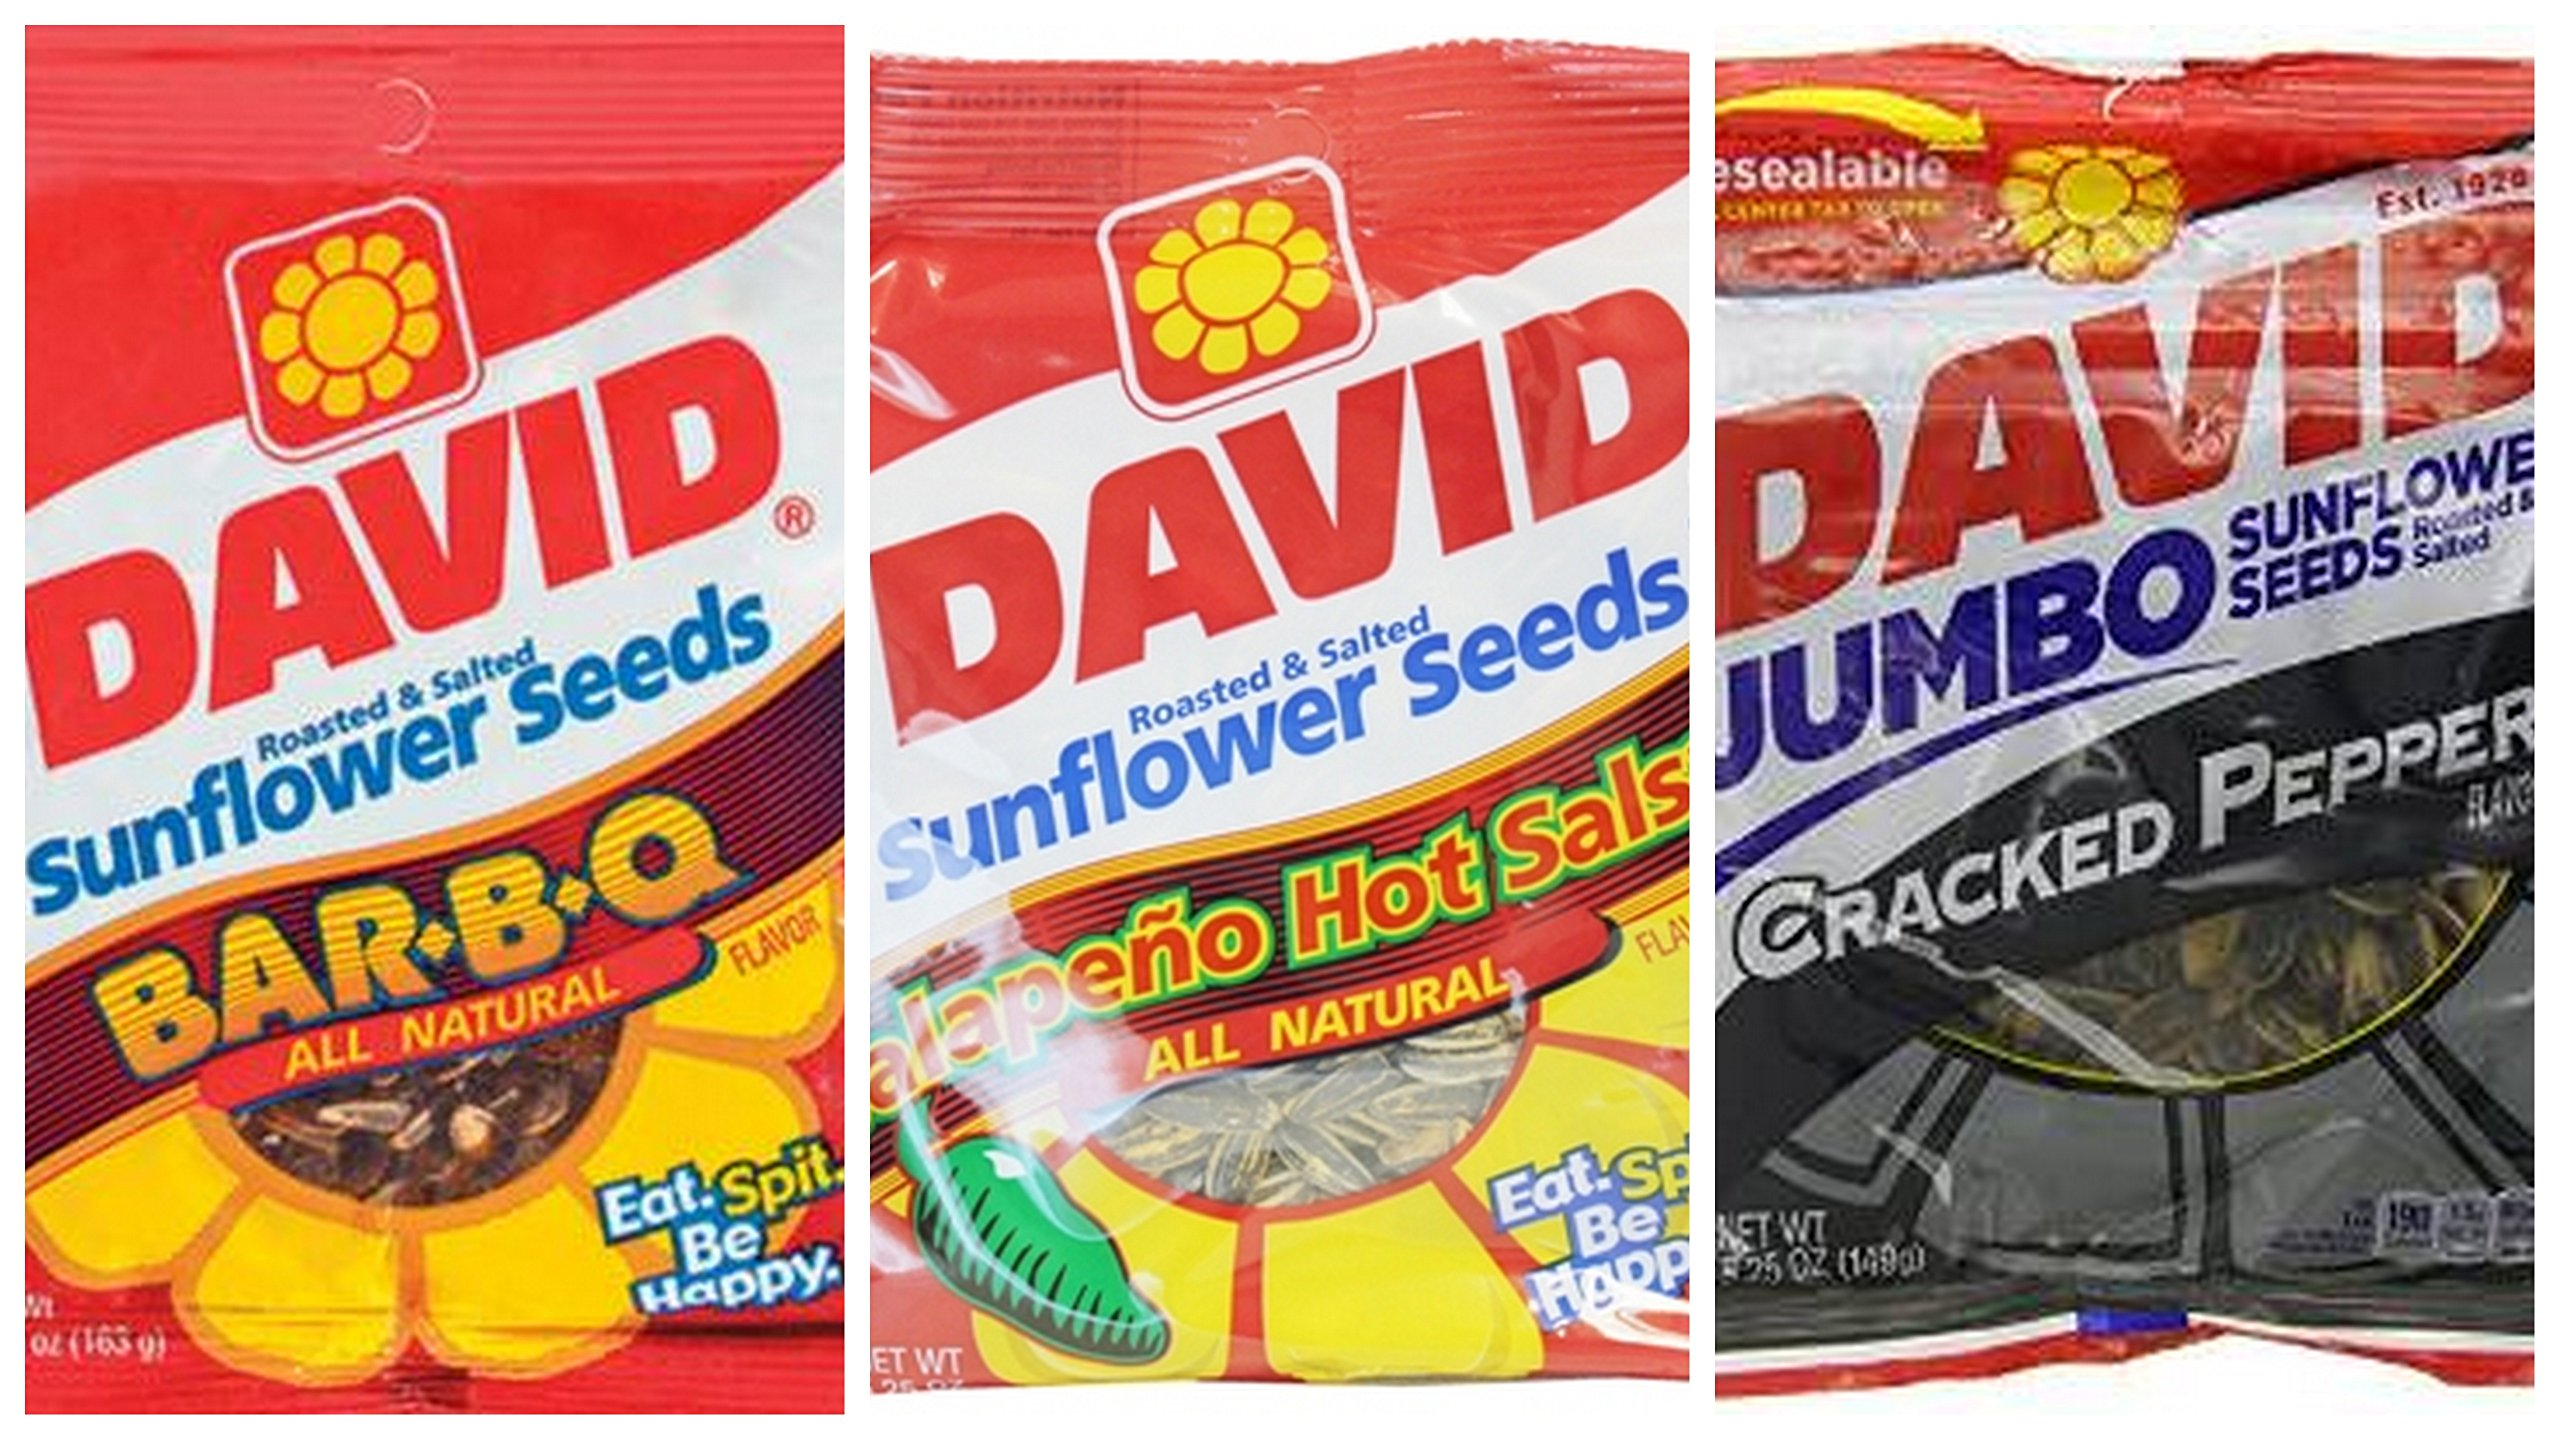 David Sunflower Seeds 5.25 oz Variety Pack (Pack of 7) 3 Bags Cracked Pepper Flavor + 2 Bags BBQ Flavor + 2 Bags Jalapeno Hot Salsa Flavor